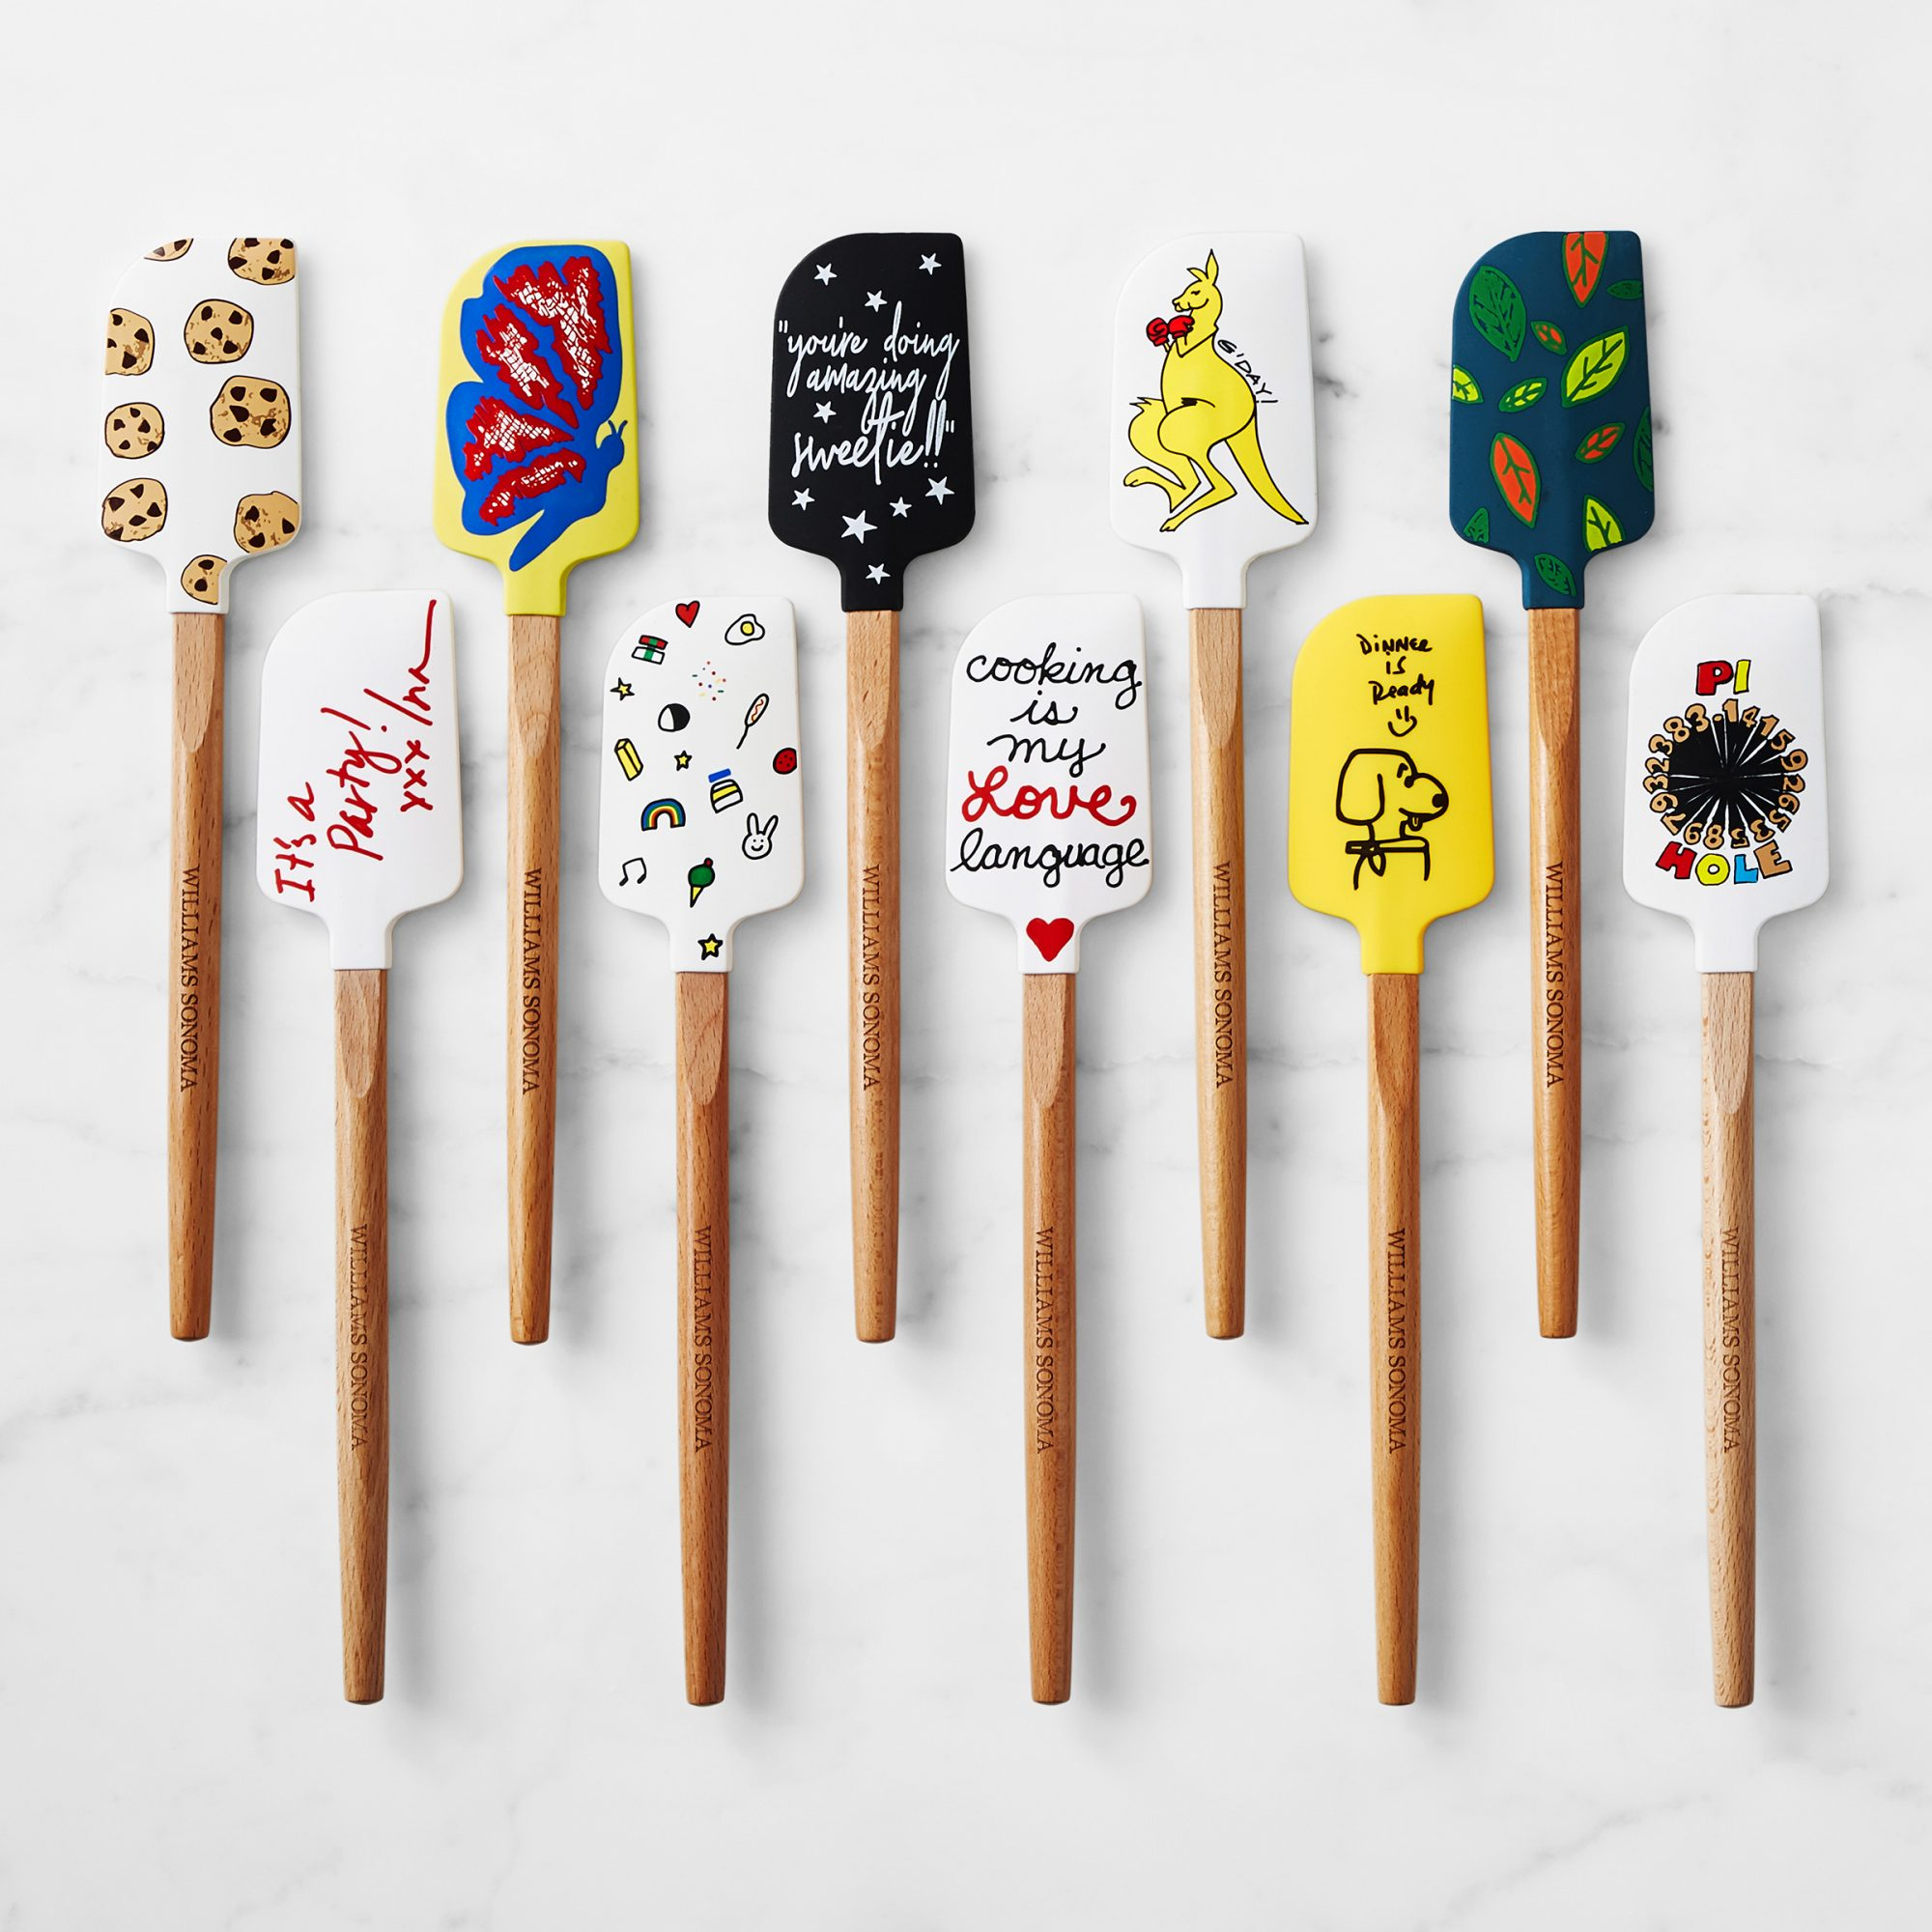 Celebrity Designed Spatulas